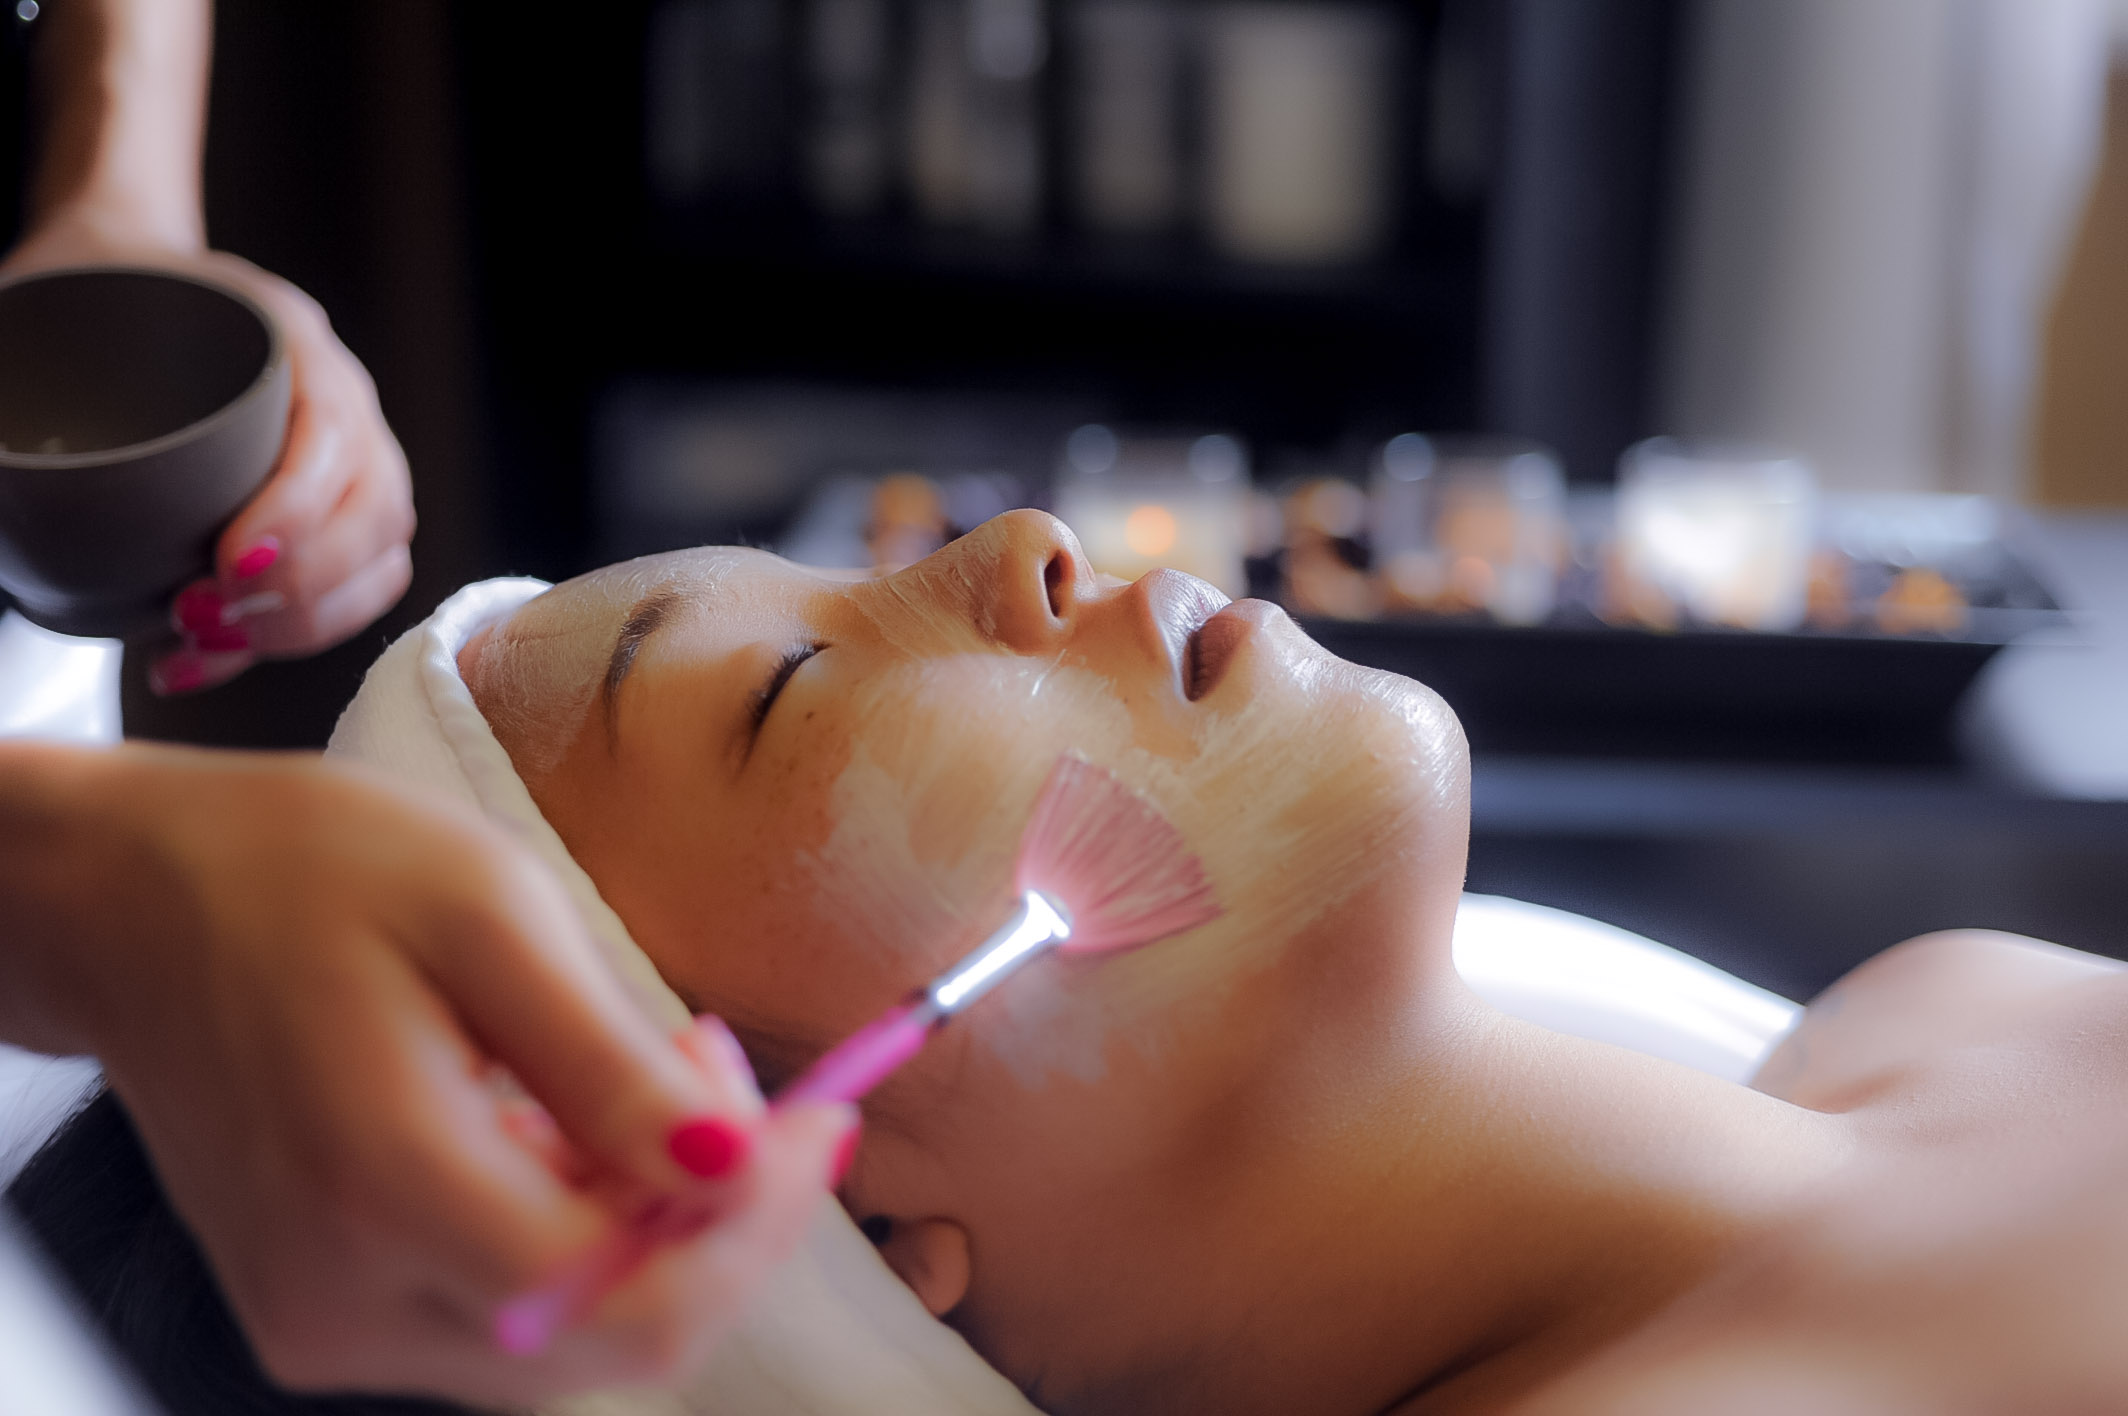 6 months prior to wedding we recommend starting a 6 step facial series. stop any facial treatments one week prior to the wedding. Stop any peels two weeks prior to the wedding. COME INTO THE SPA FOR SOME PAMPERING THE DAY BEFORE YOUR WEDDING TO PRIMP AND PREP WITH A LUXURIOUS MASSAGE, blowout, NAIL AND WAXING TREATMENTS.